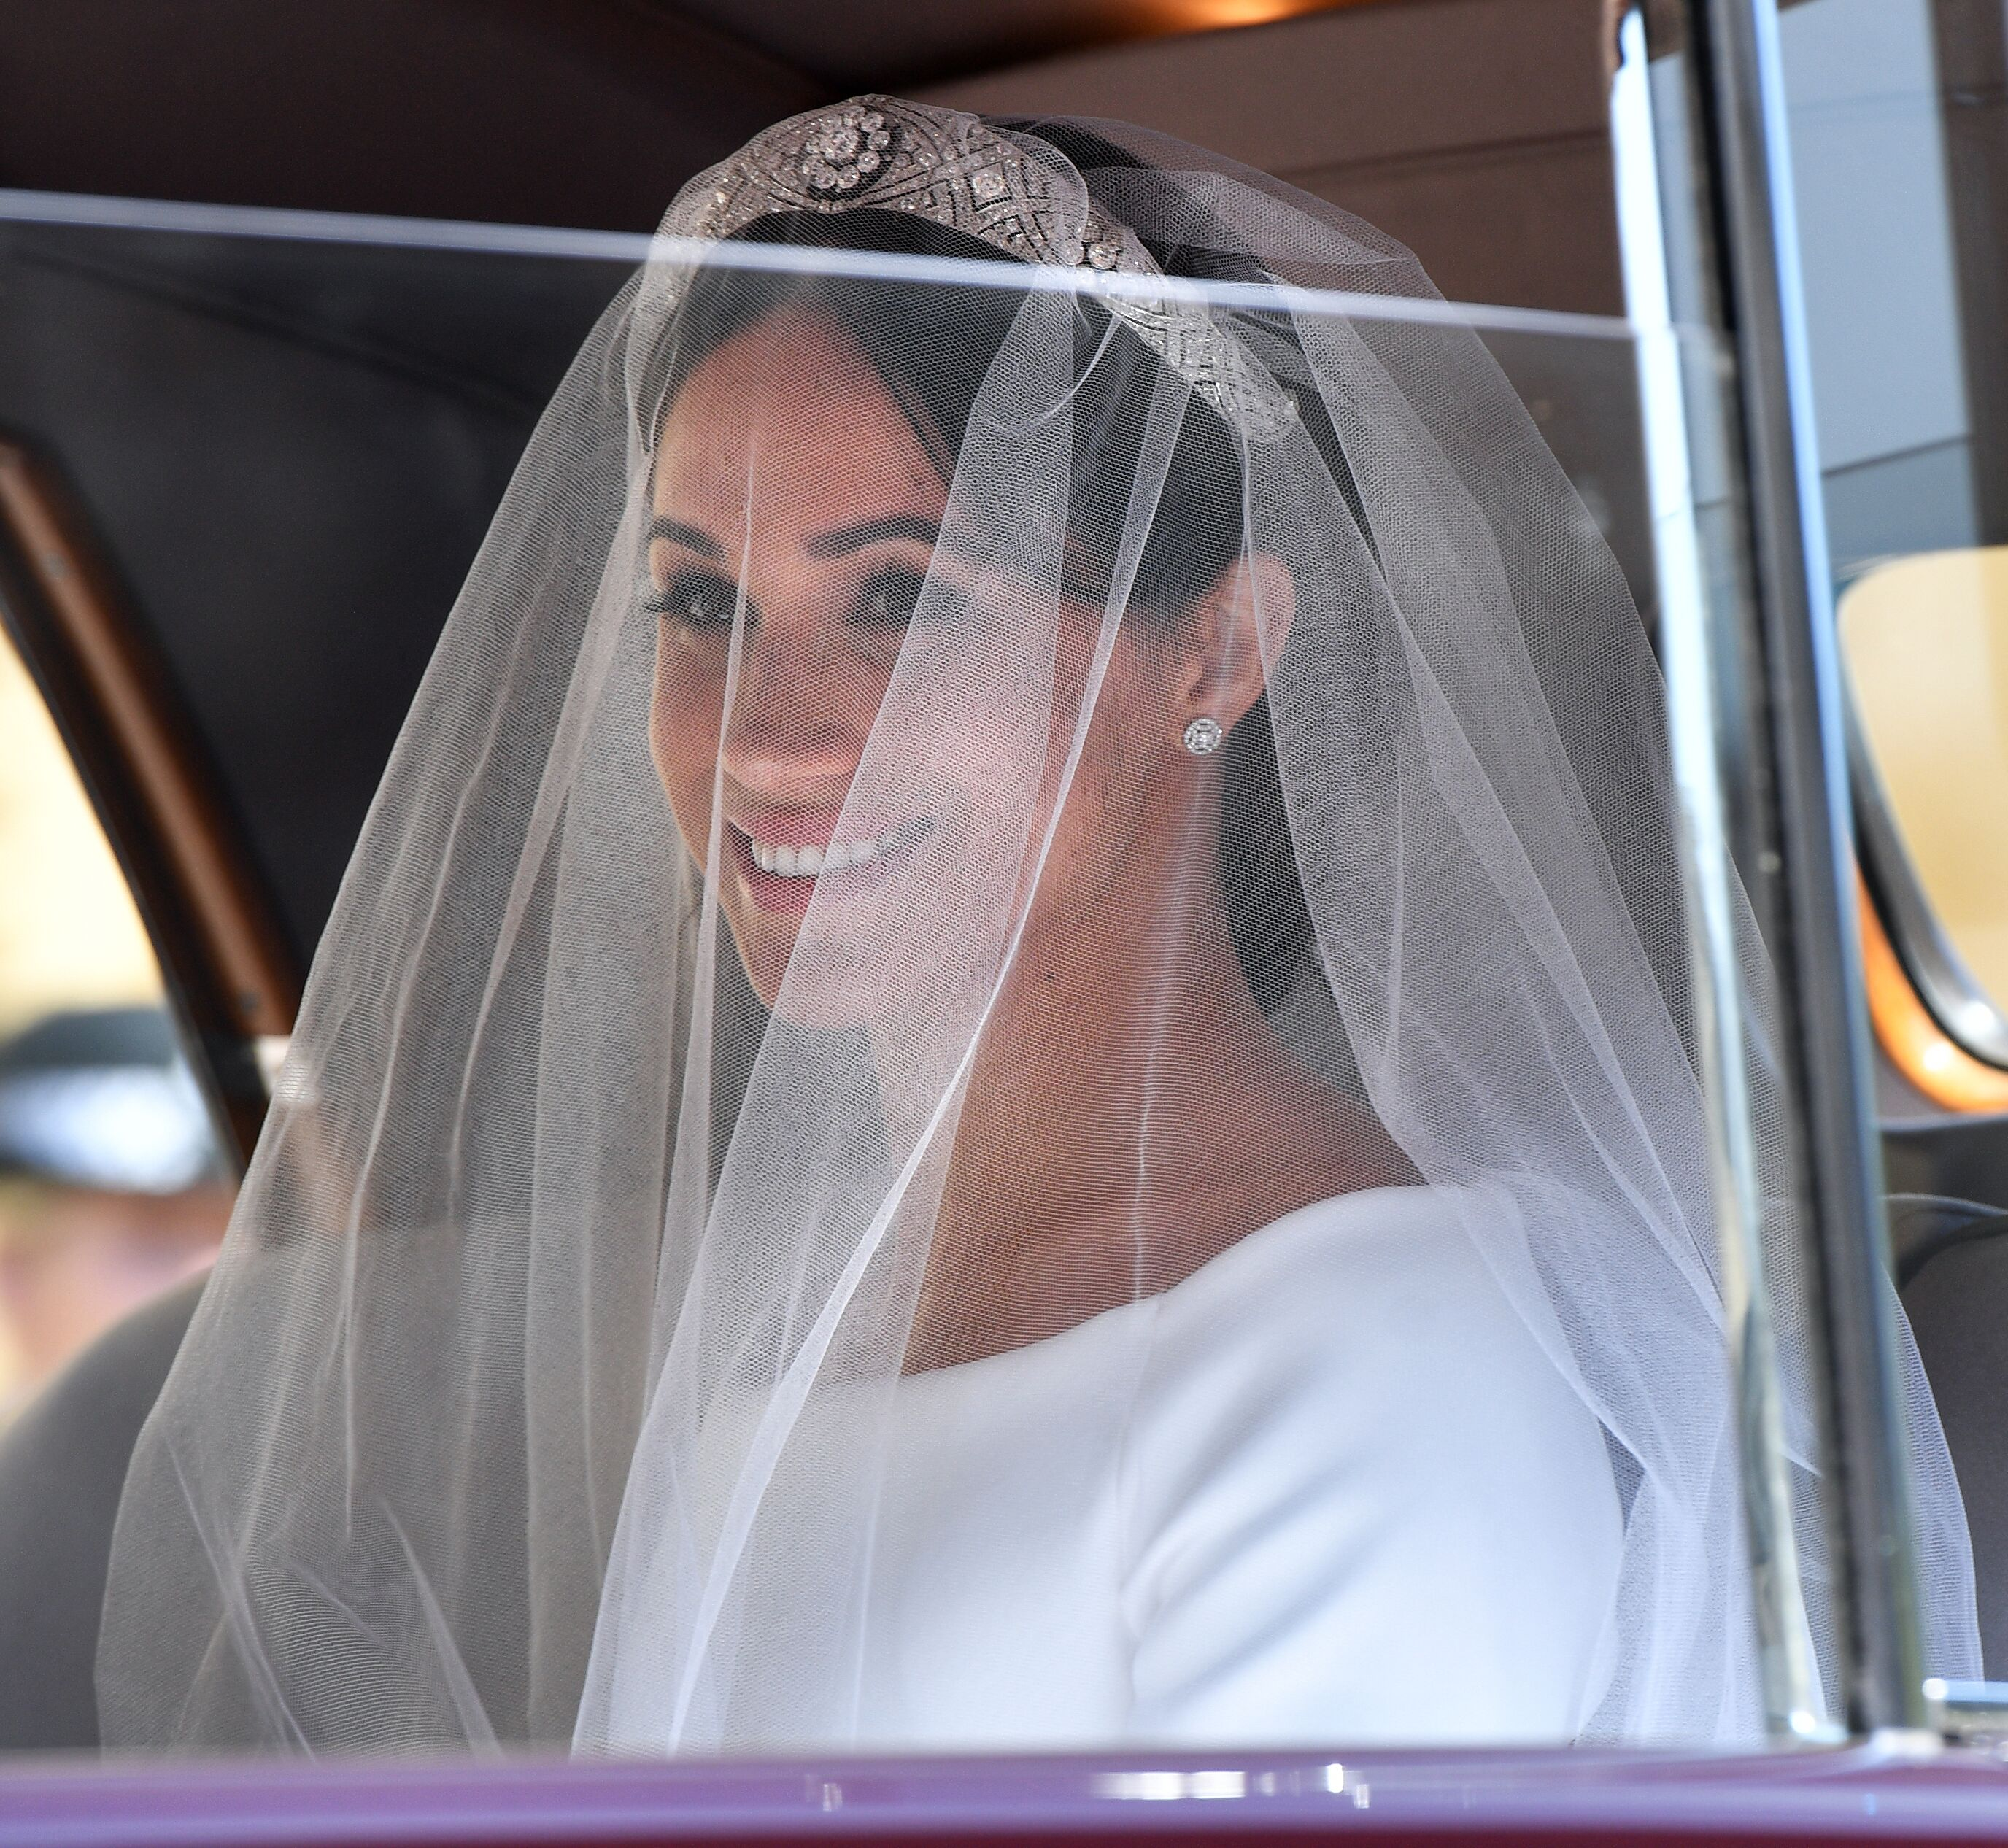 Meghan Markle arrives at St George's Chapel, Windsor Castle for her wedding to Prince Harry. | Source: Getty Images